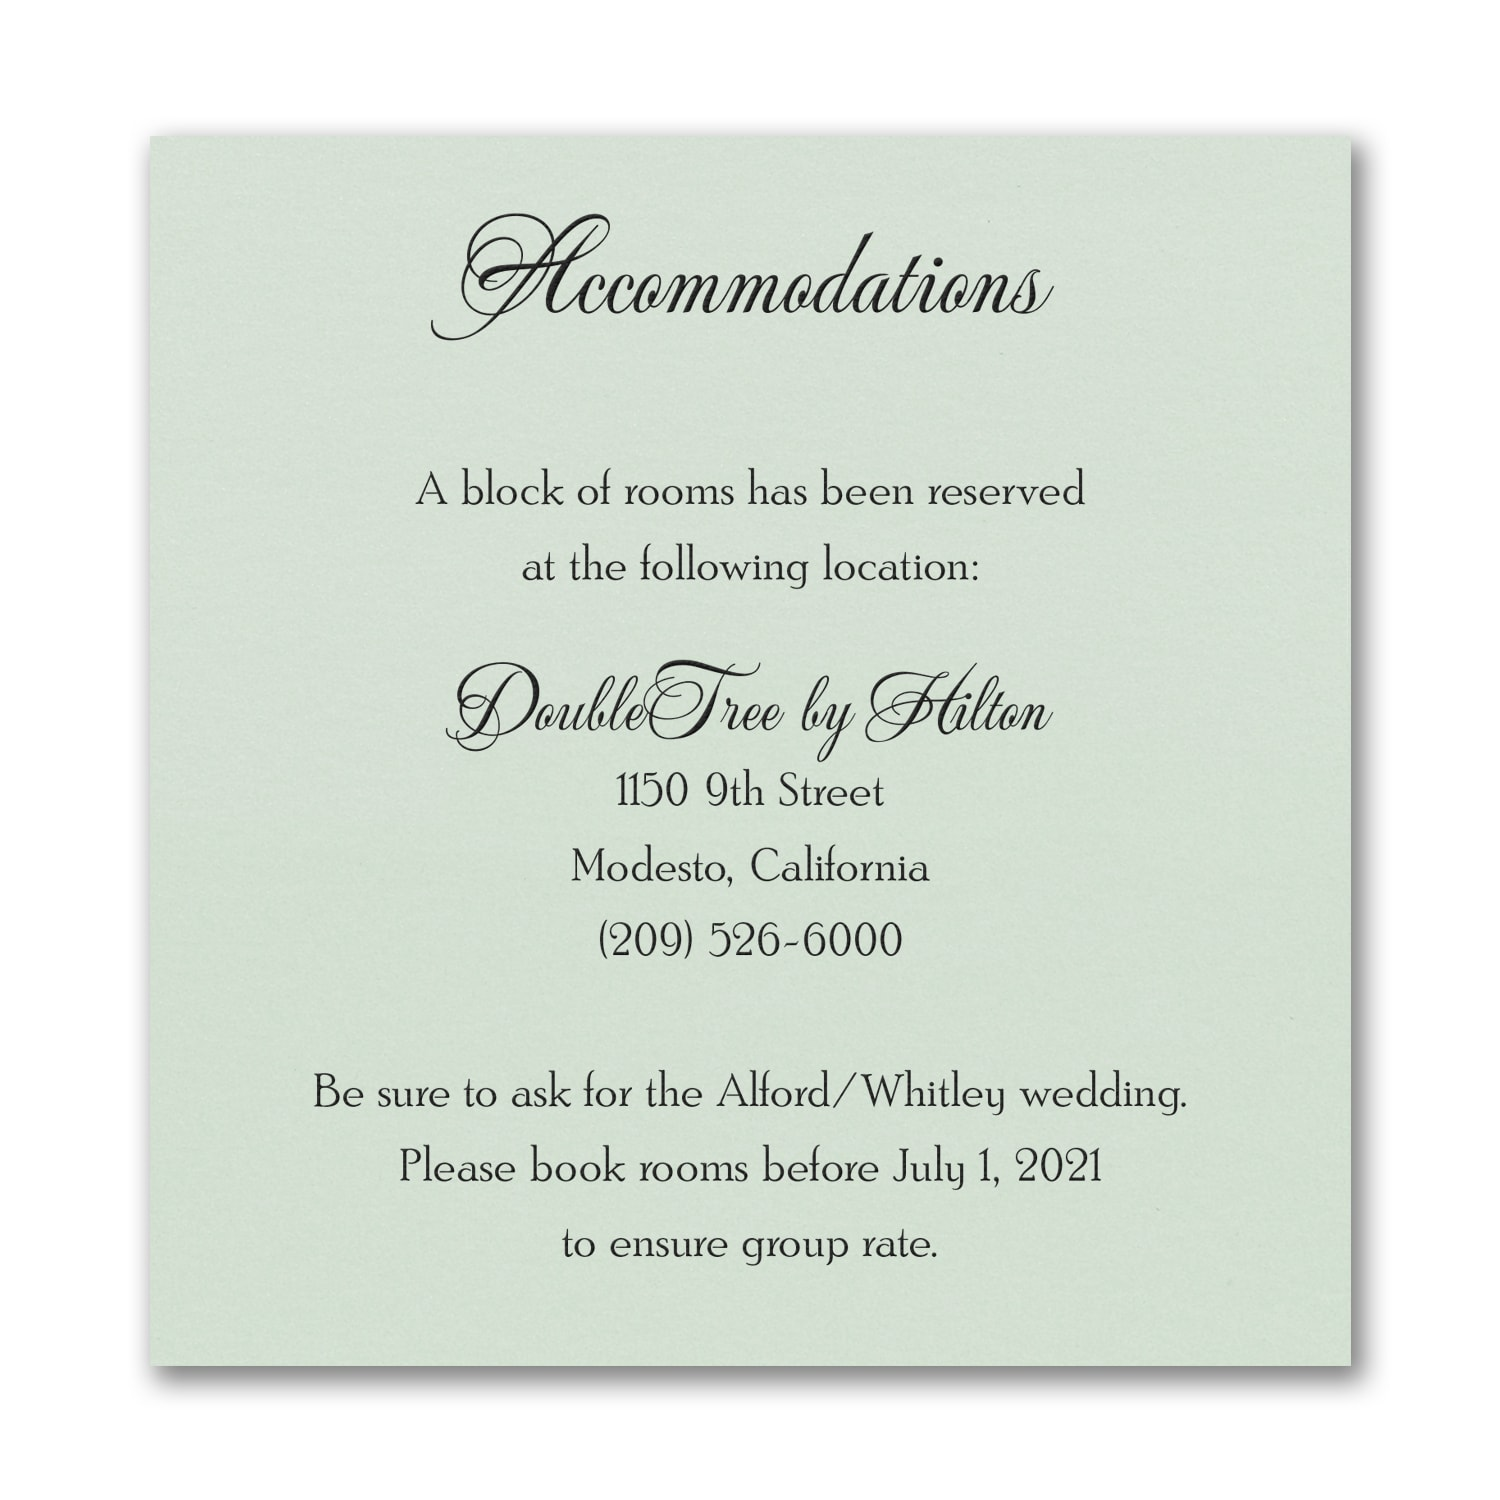 Timeless Sophistication - Accommodation Card - Mint Shimmer > Map ...